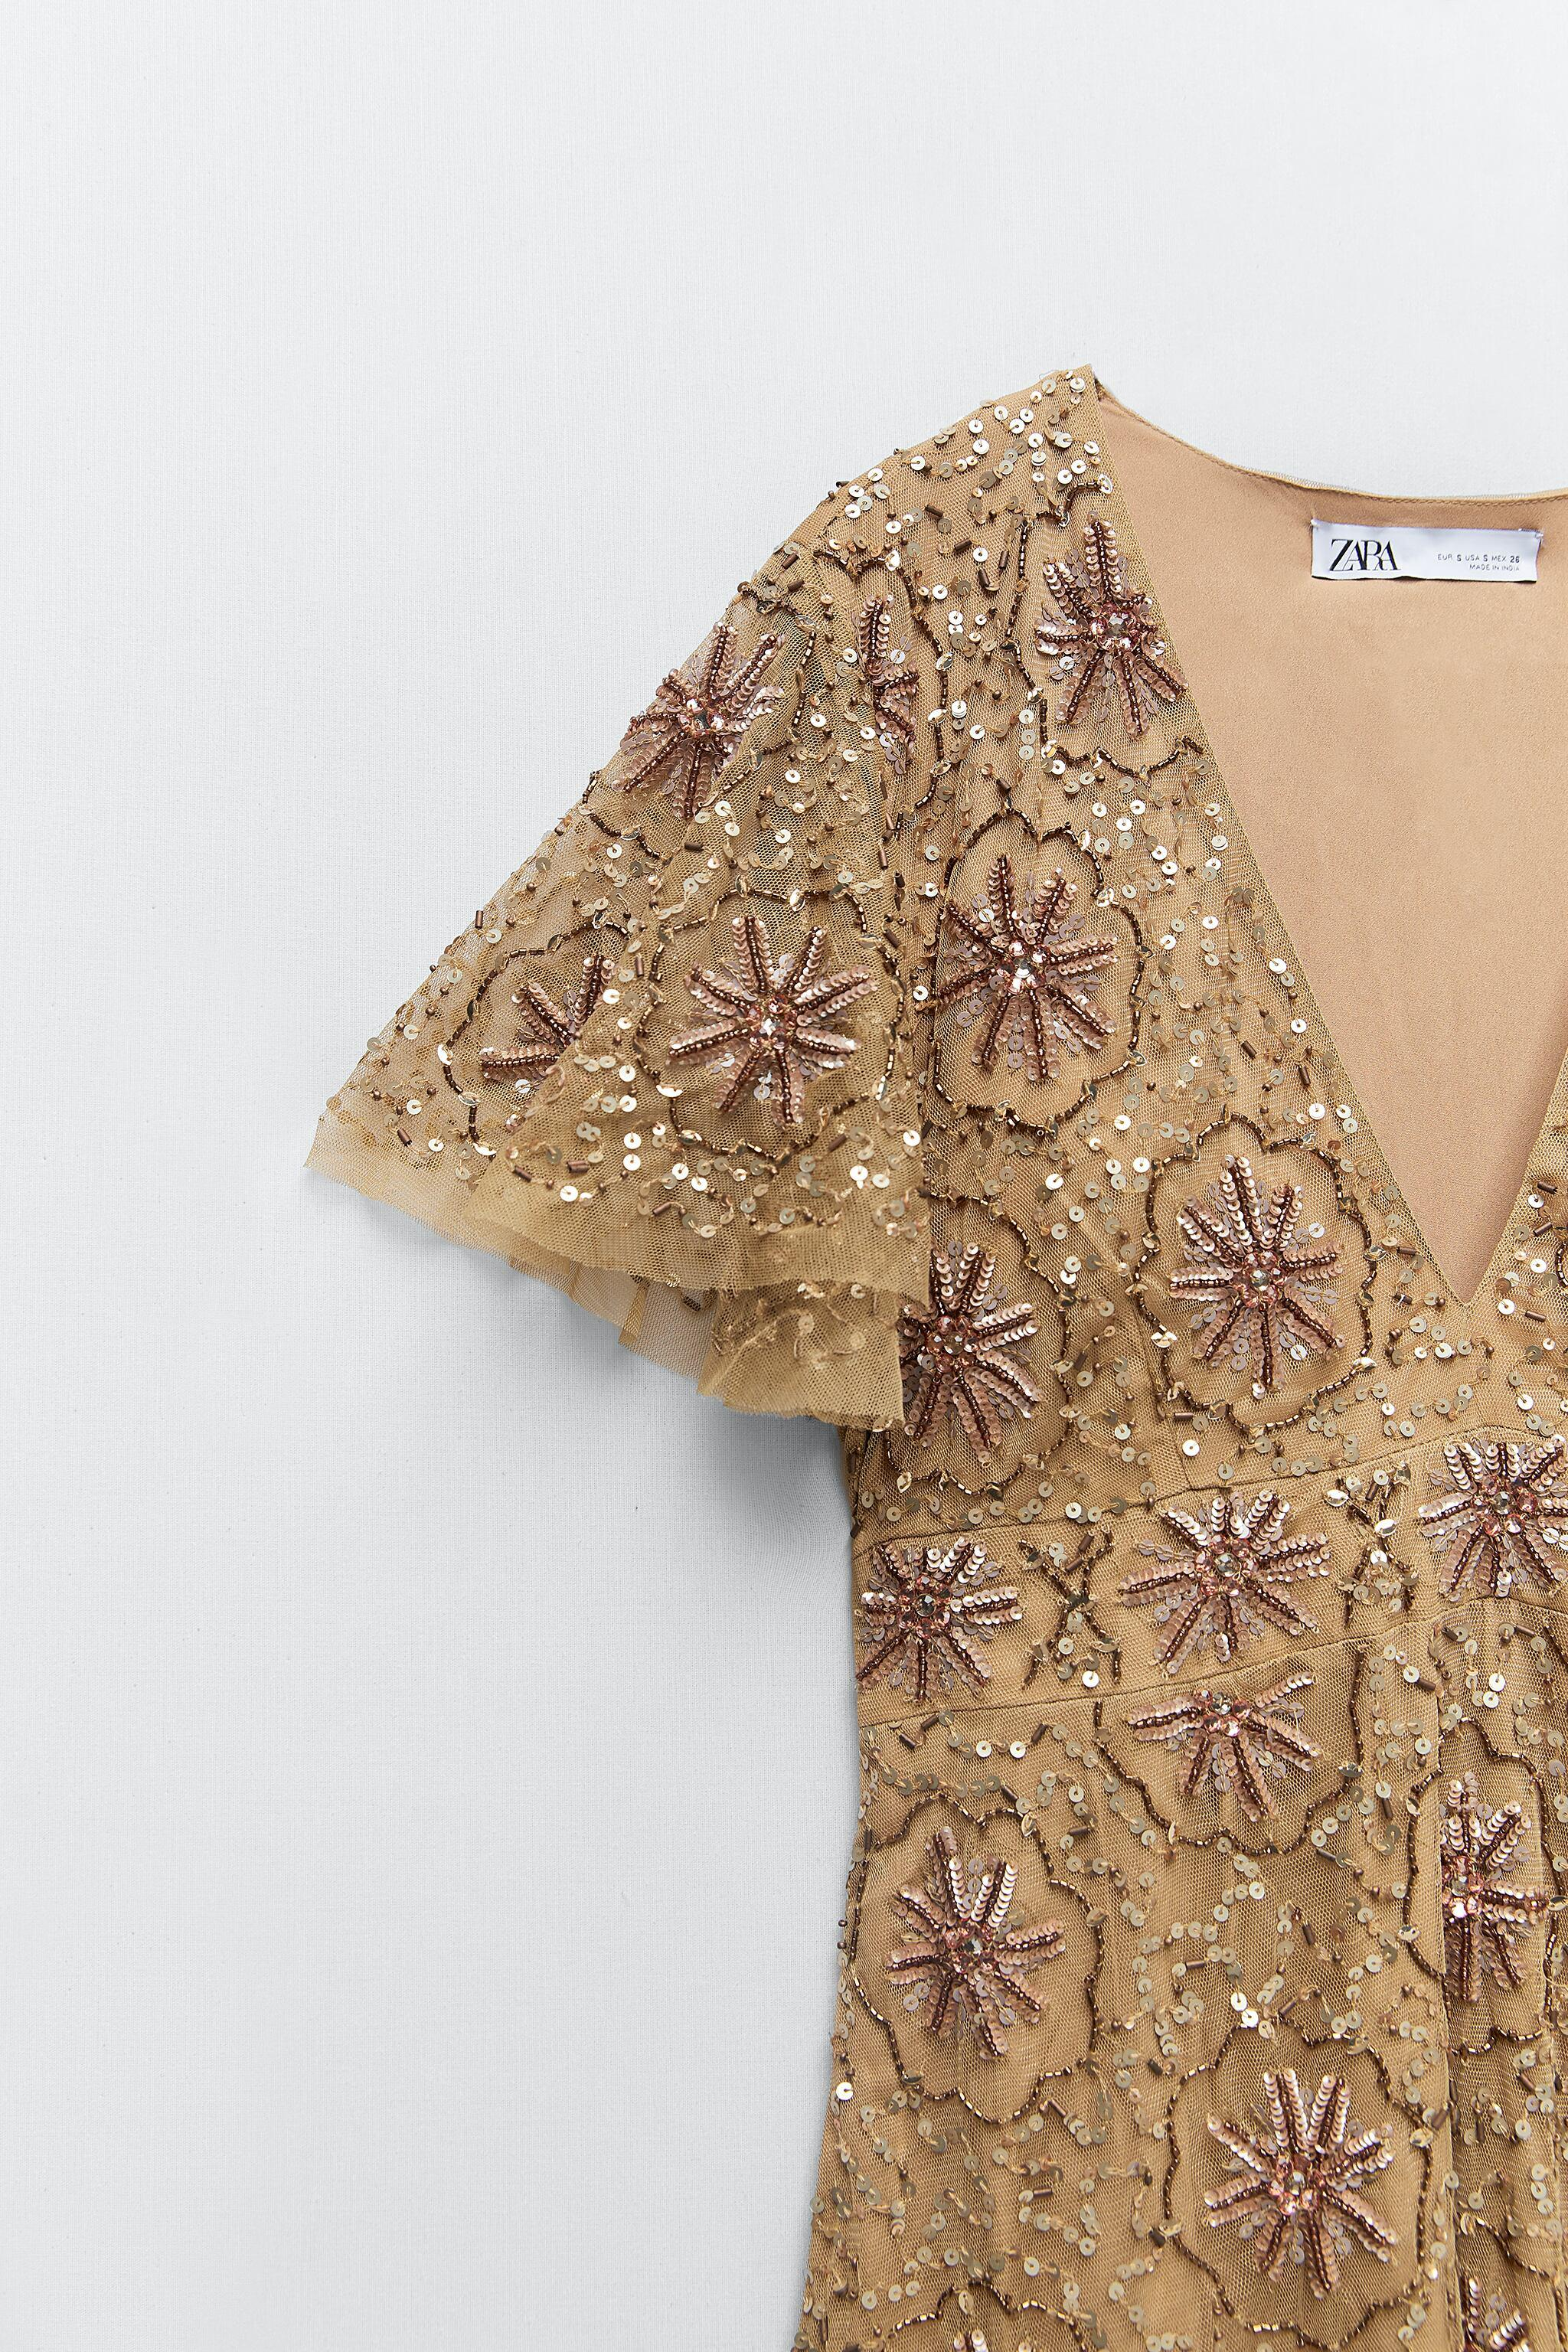 BEADED SPECIAL EDITION KNIT DRESS 8